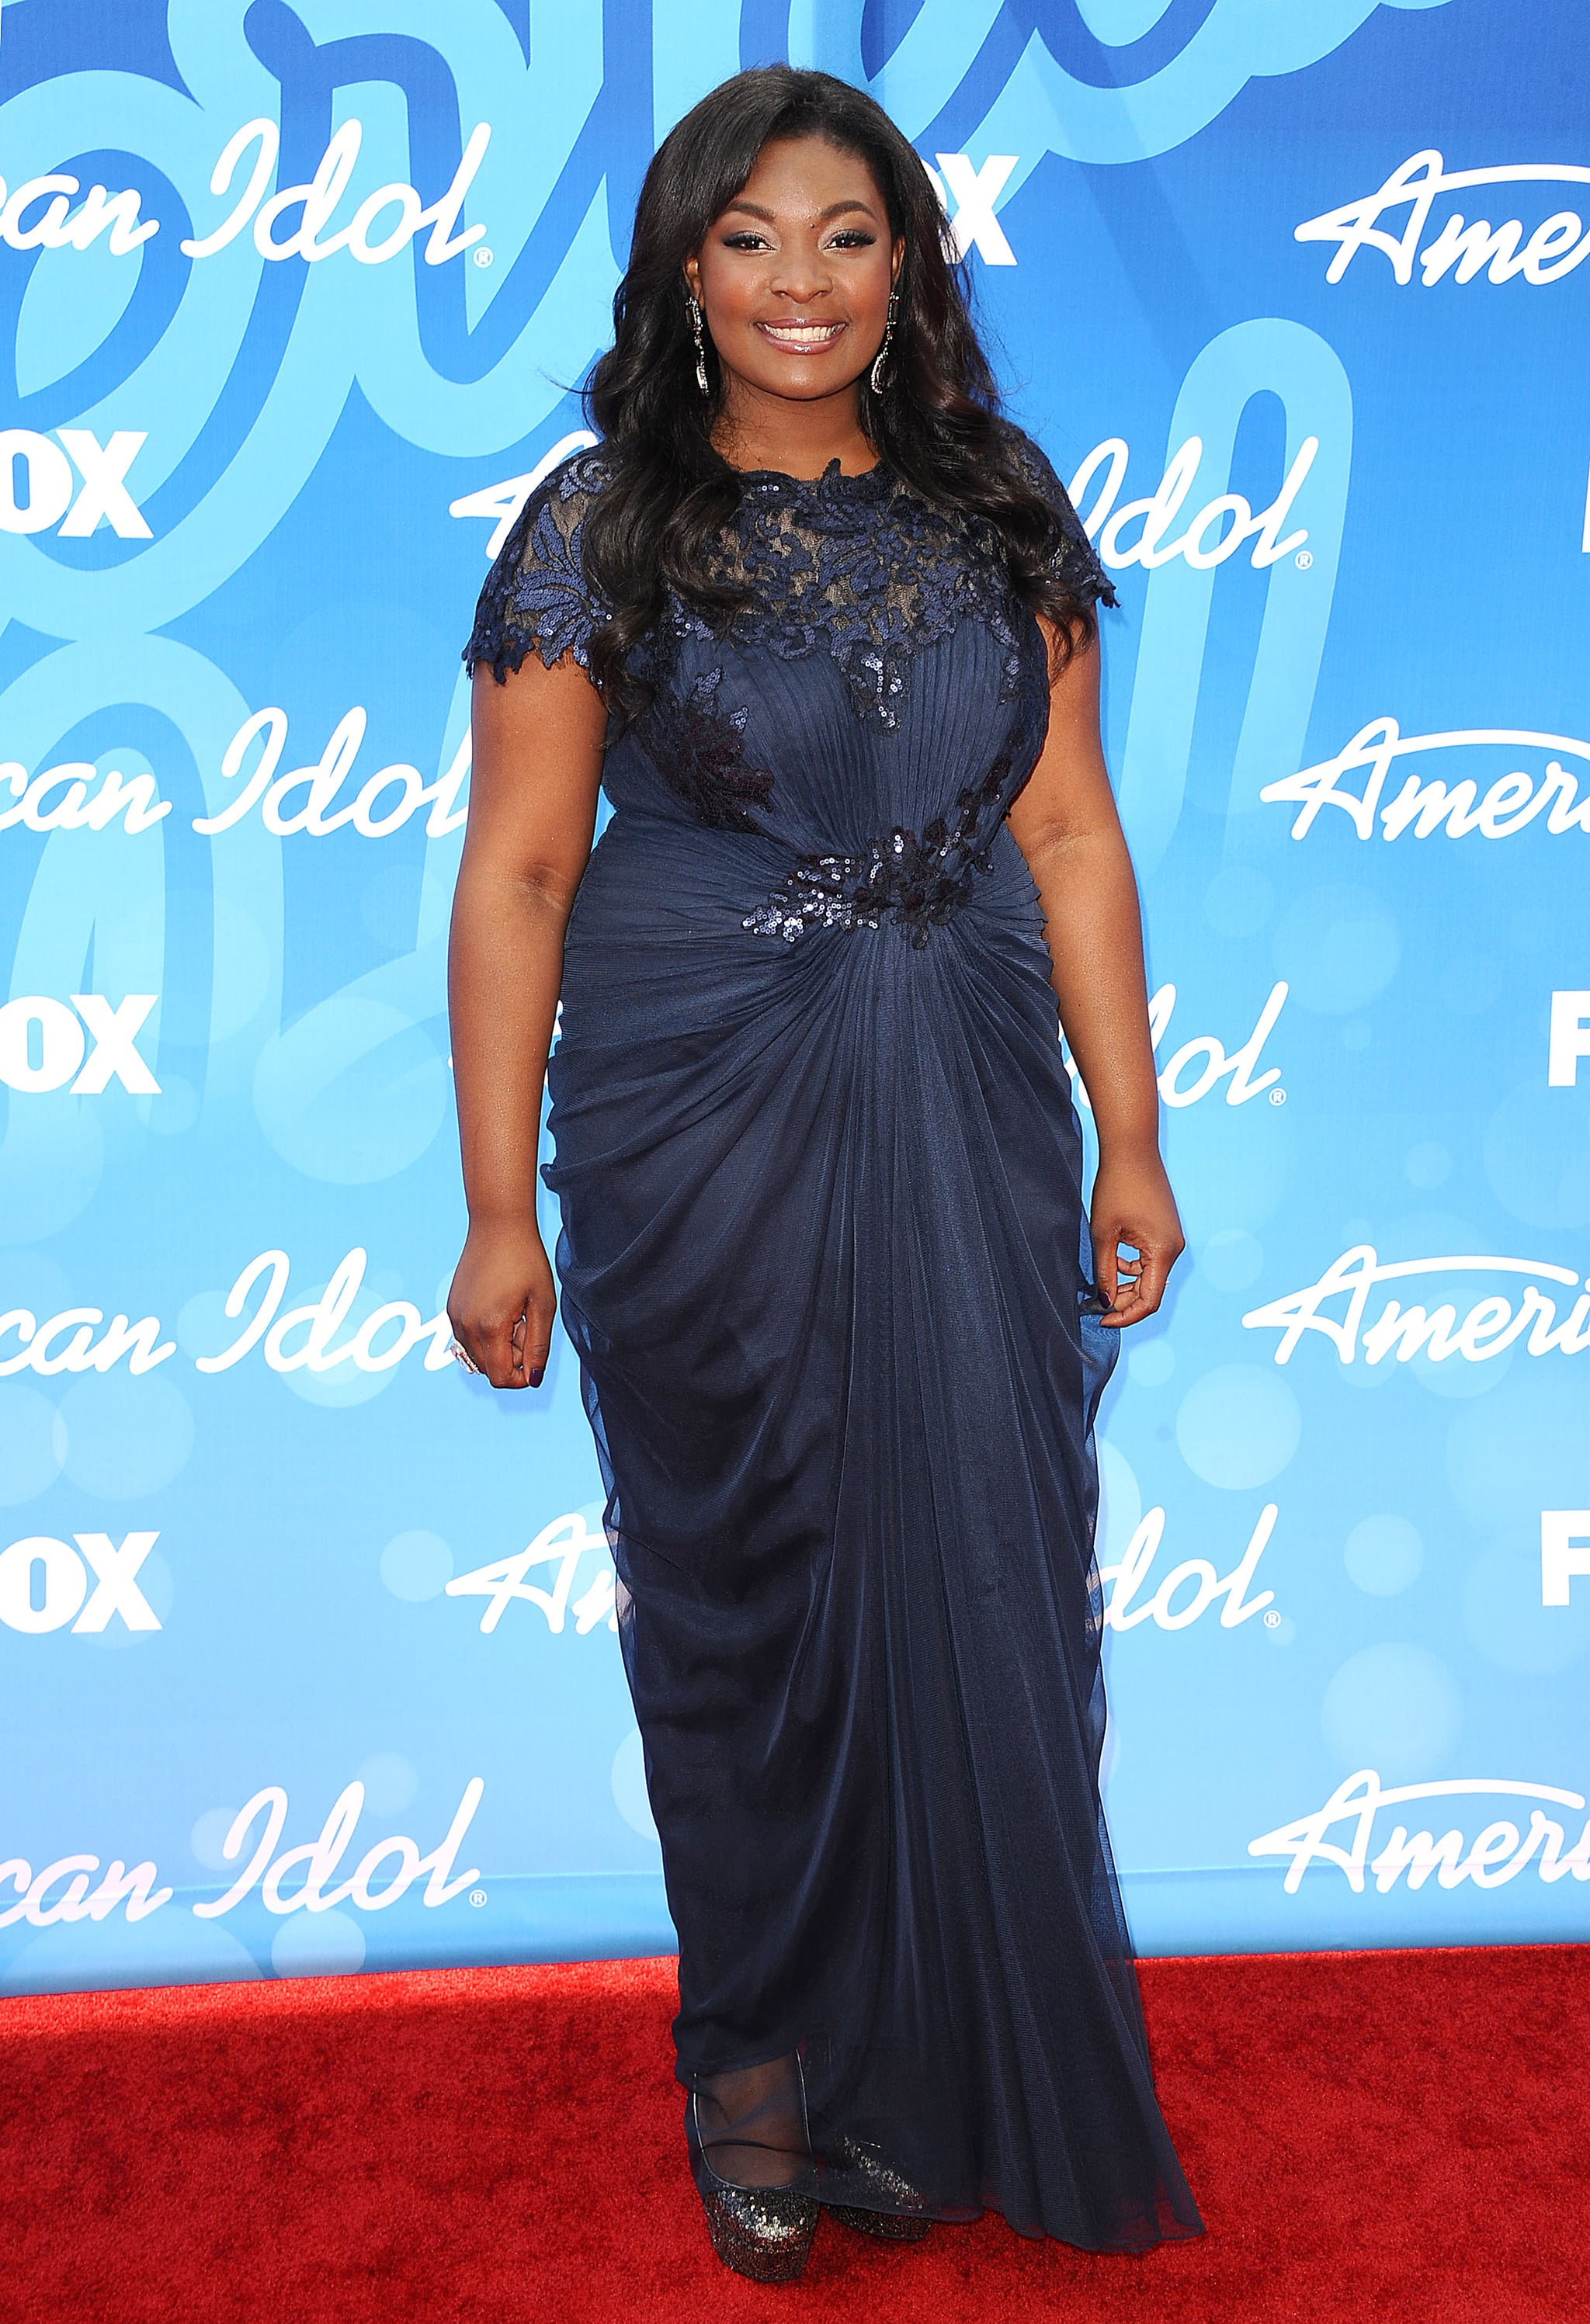 Candice Glover wore a navy blue gown.